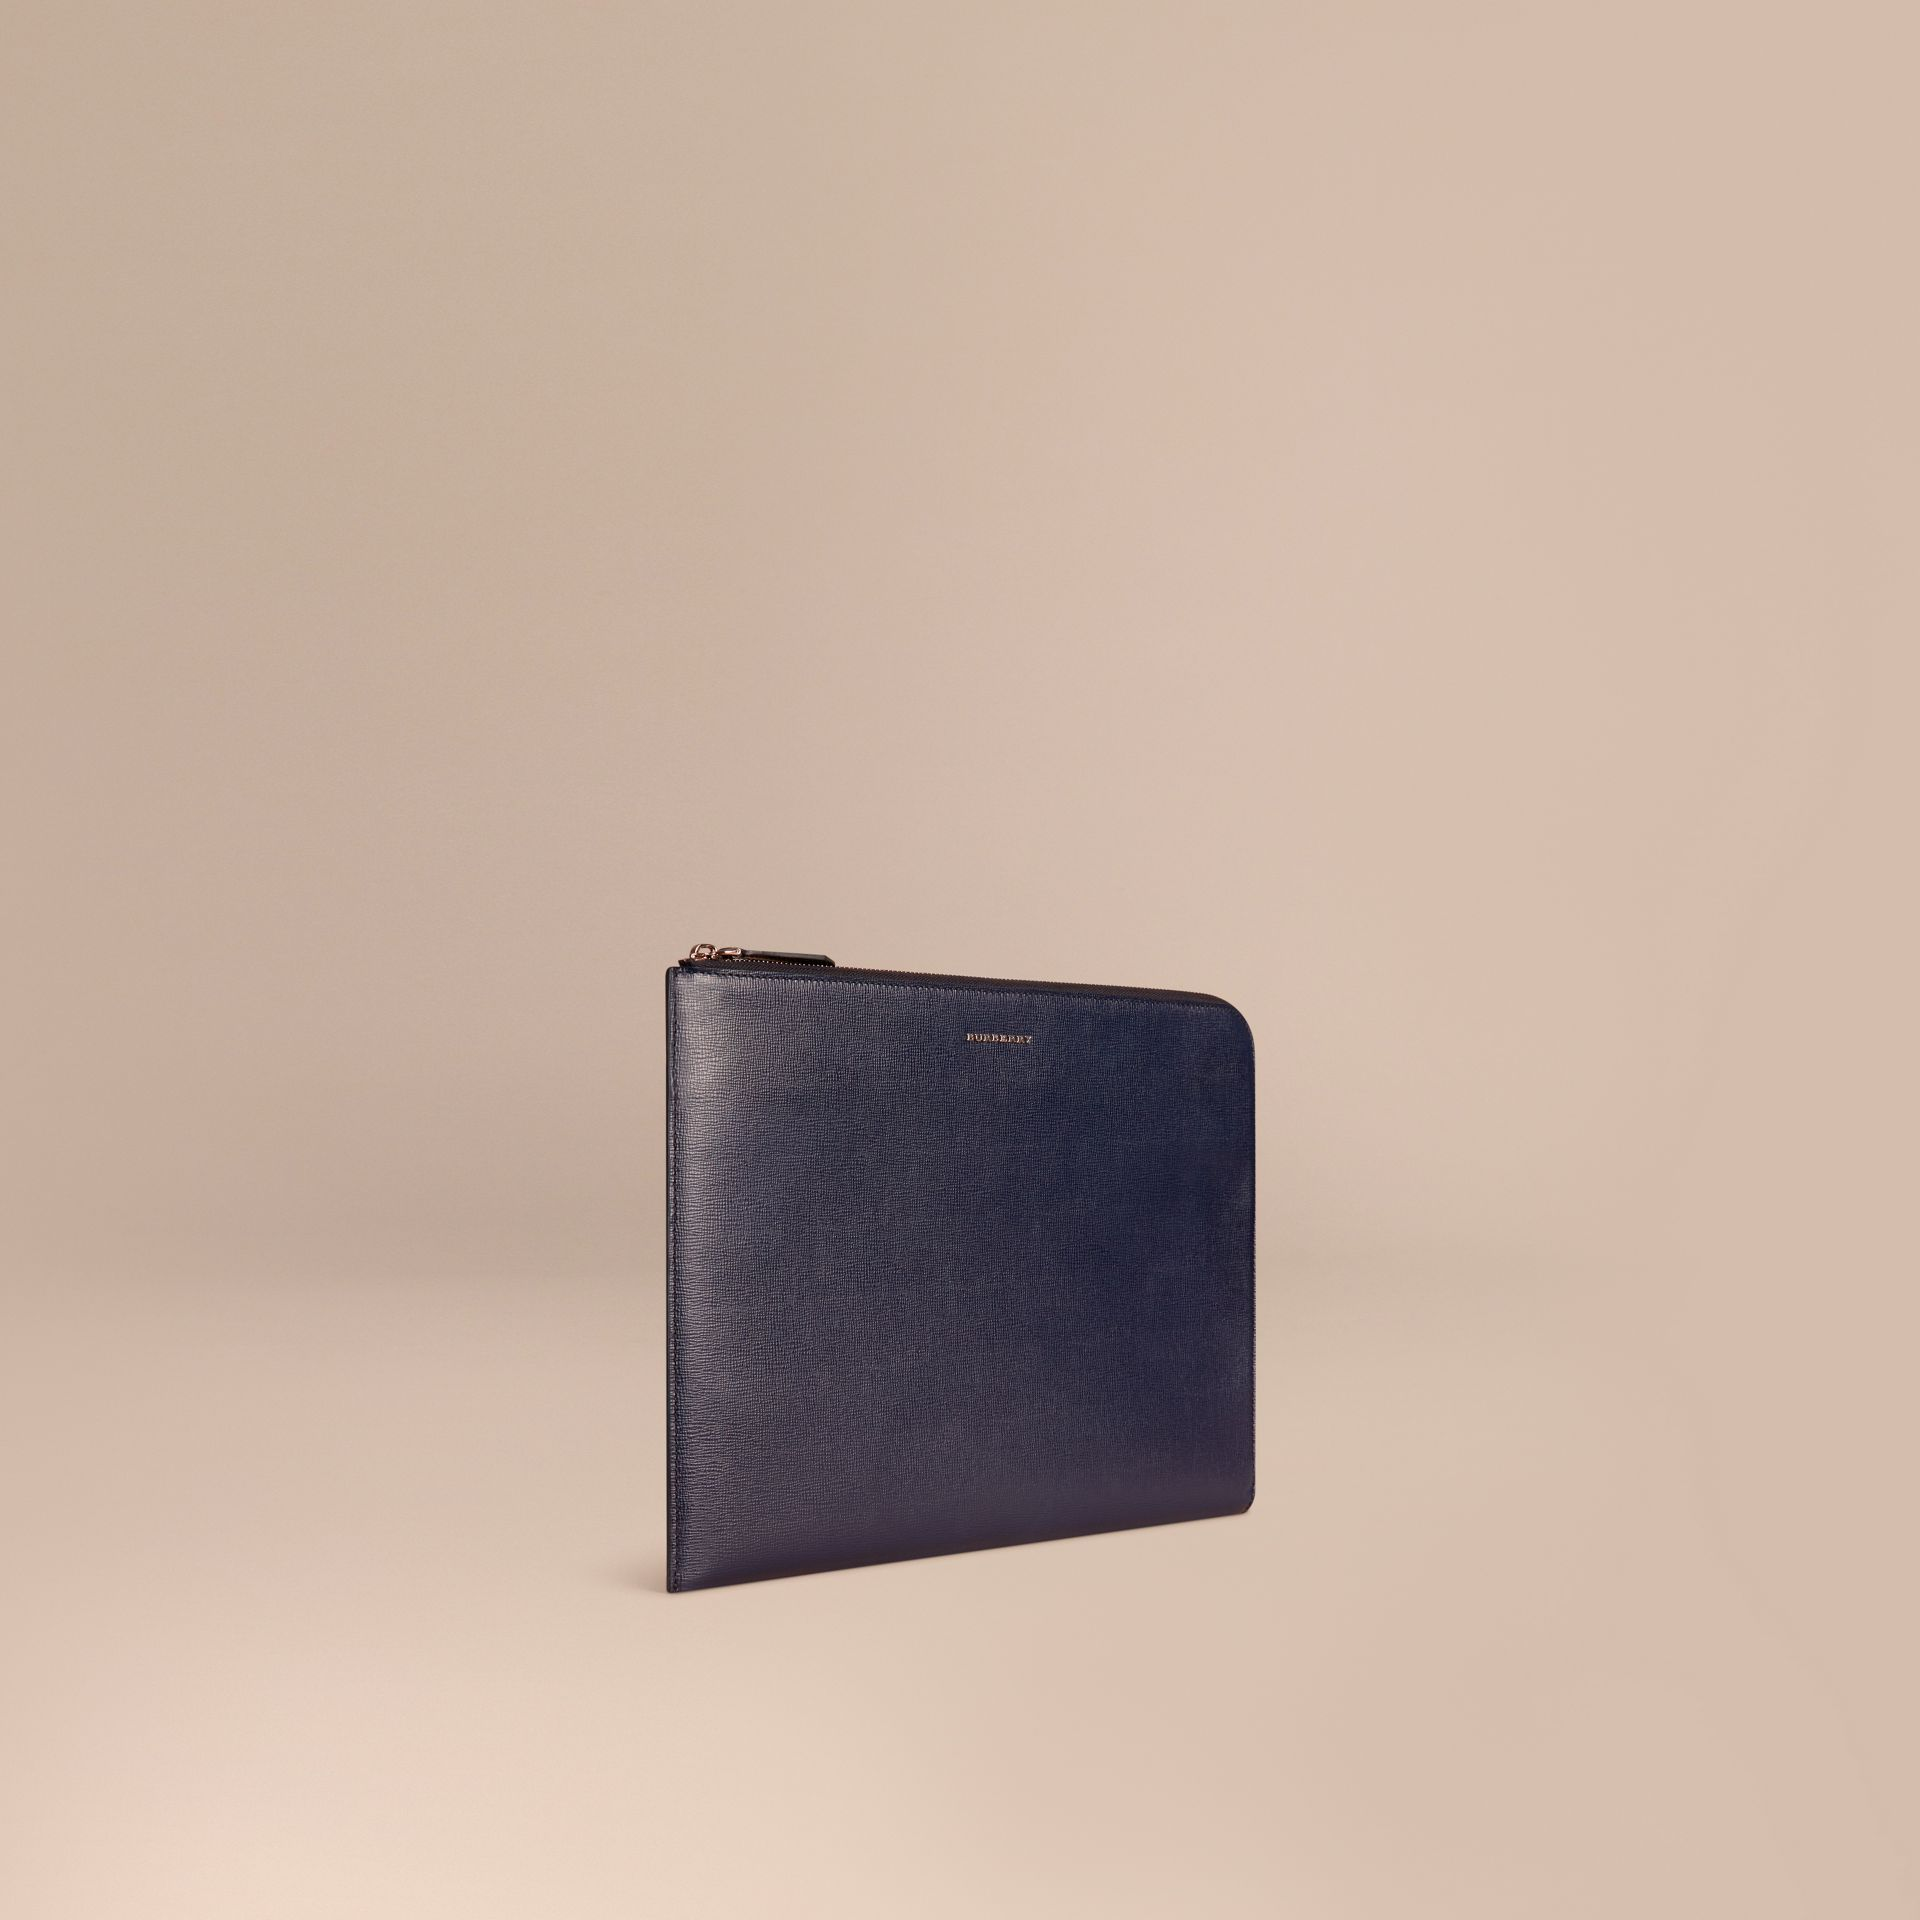 Dark navy London Leather Document Case Dark Navy - gallery image 1